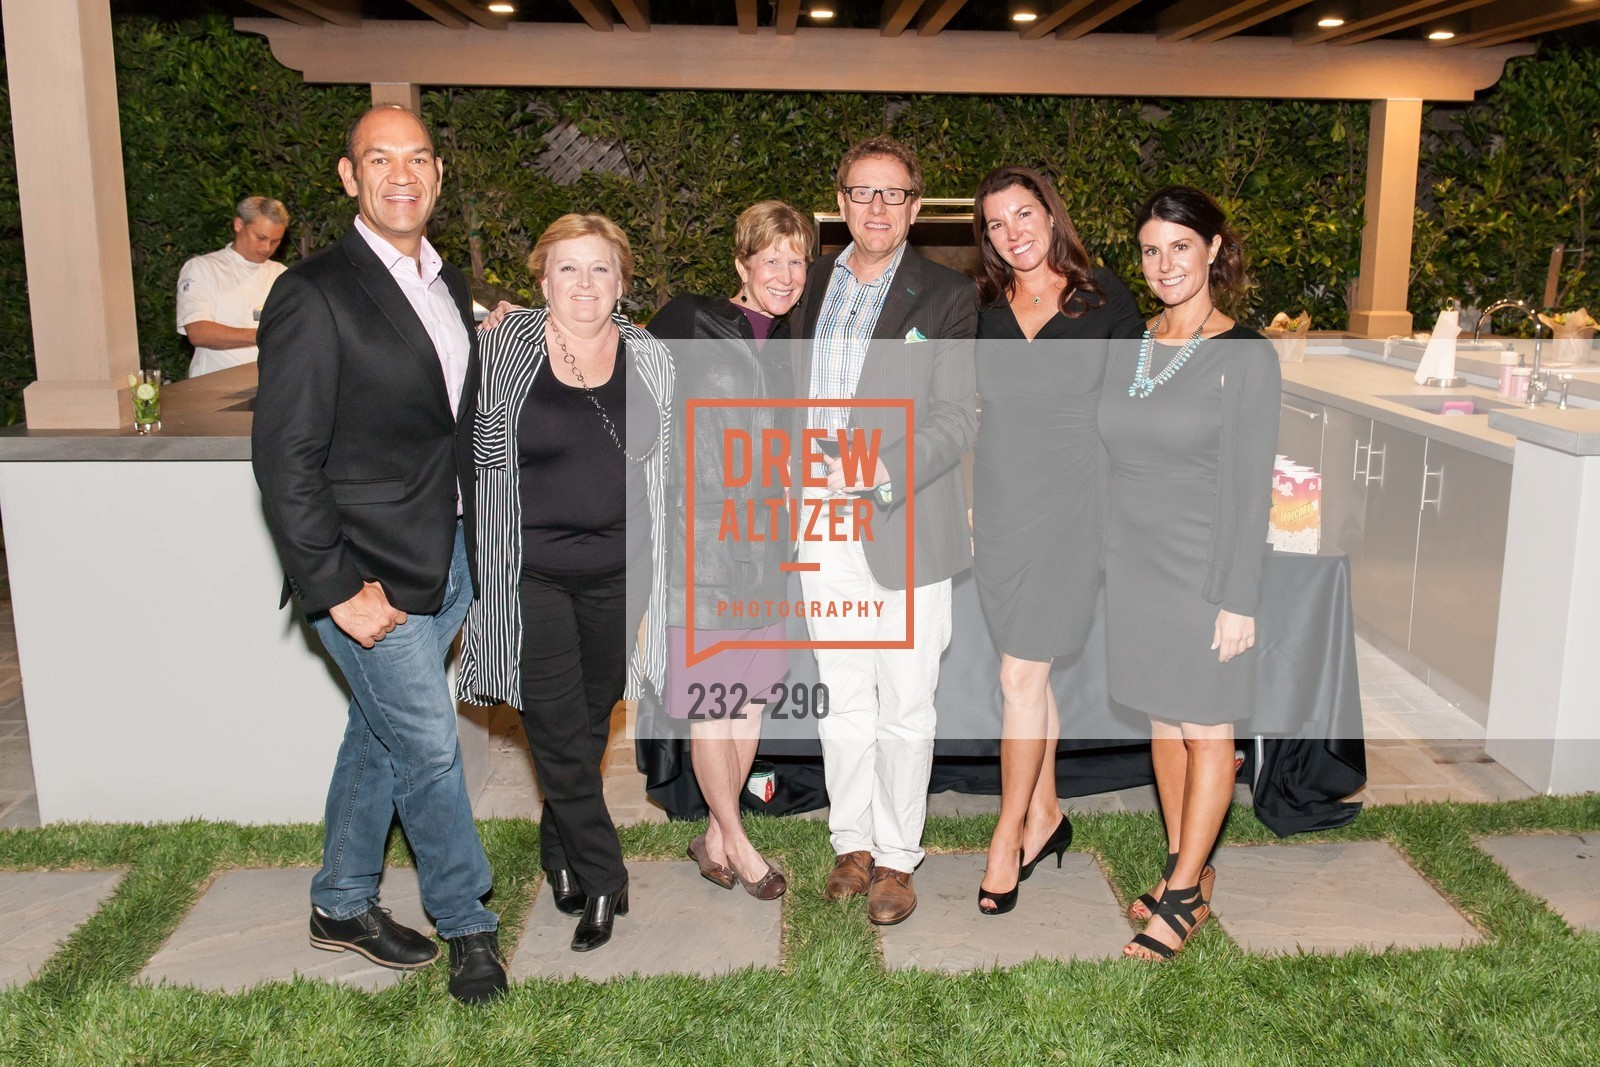 Patrick Davila, Carrie Markham, Brenda Lhormer, Marc Lhormer, Michelle Baggett, Carissa Ashman, Napa Valley Film Festival: Silicon Valley First Look, Private home. 1030 Hamilton Ave, September 16th, 2015